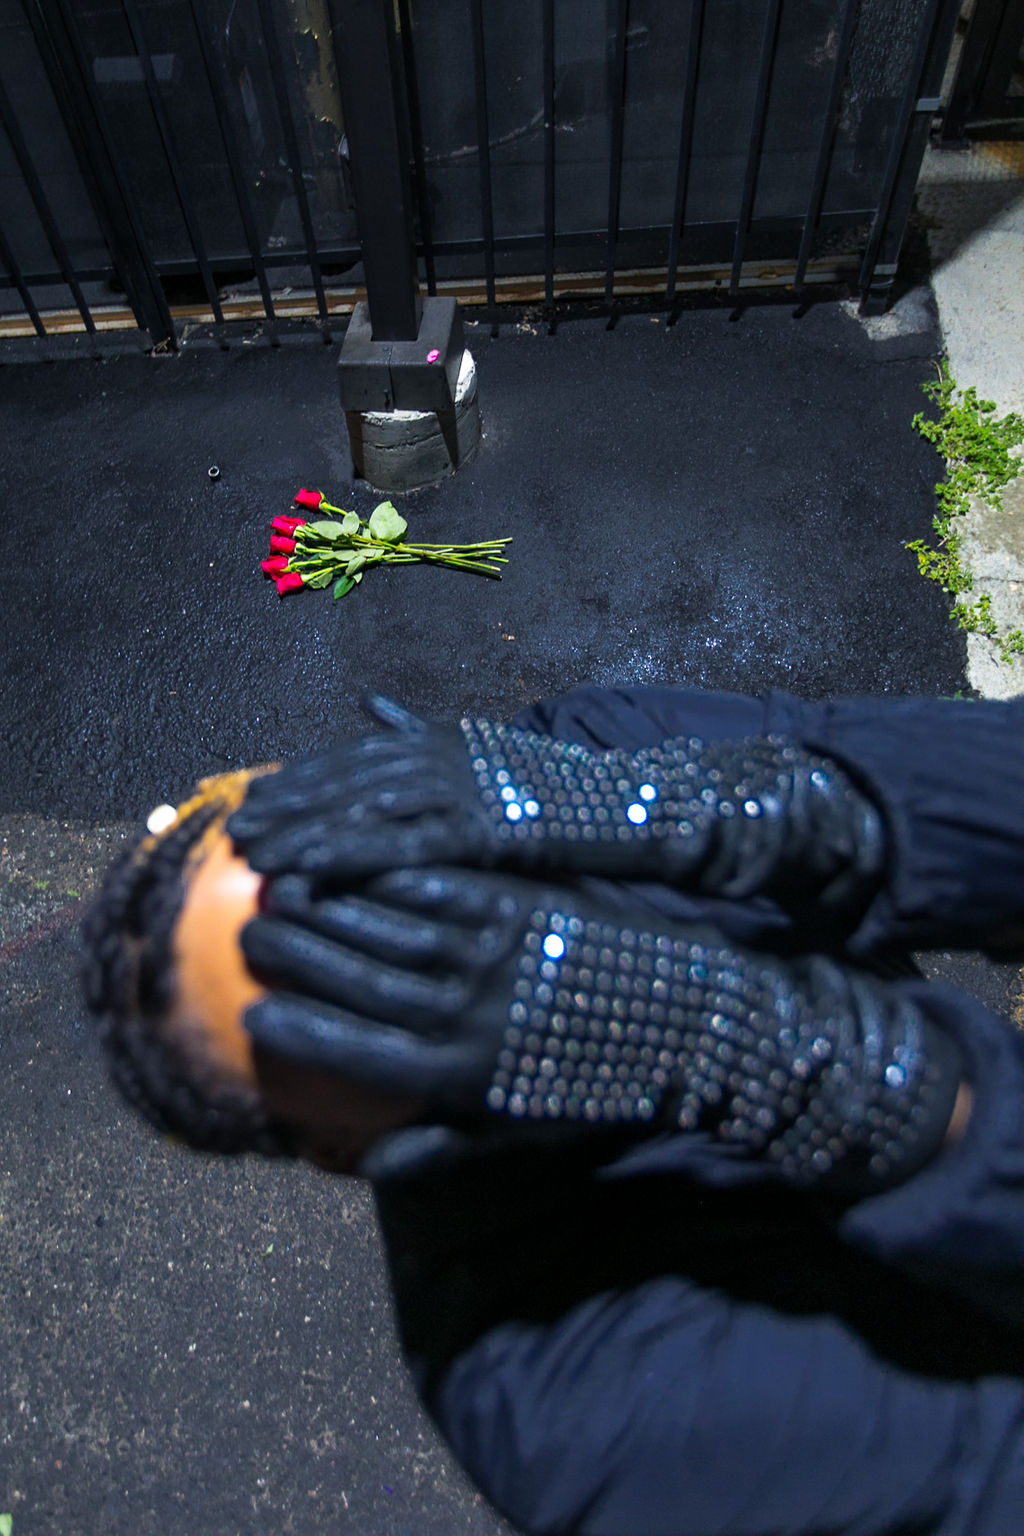 leather gloves-xmmtt-rsee-lcm-social media hiatus-roses-wear who you are